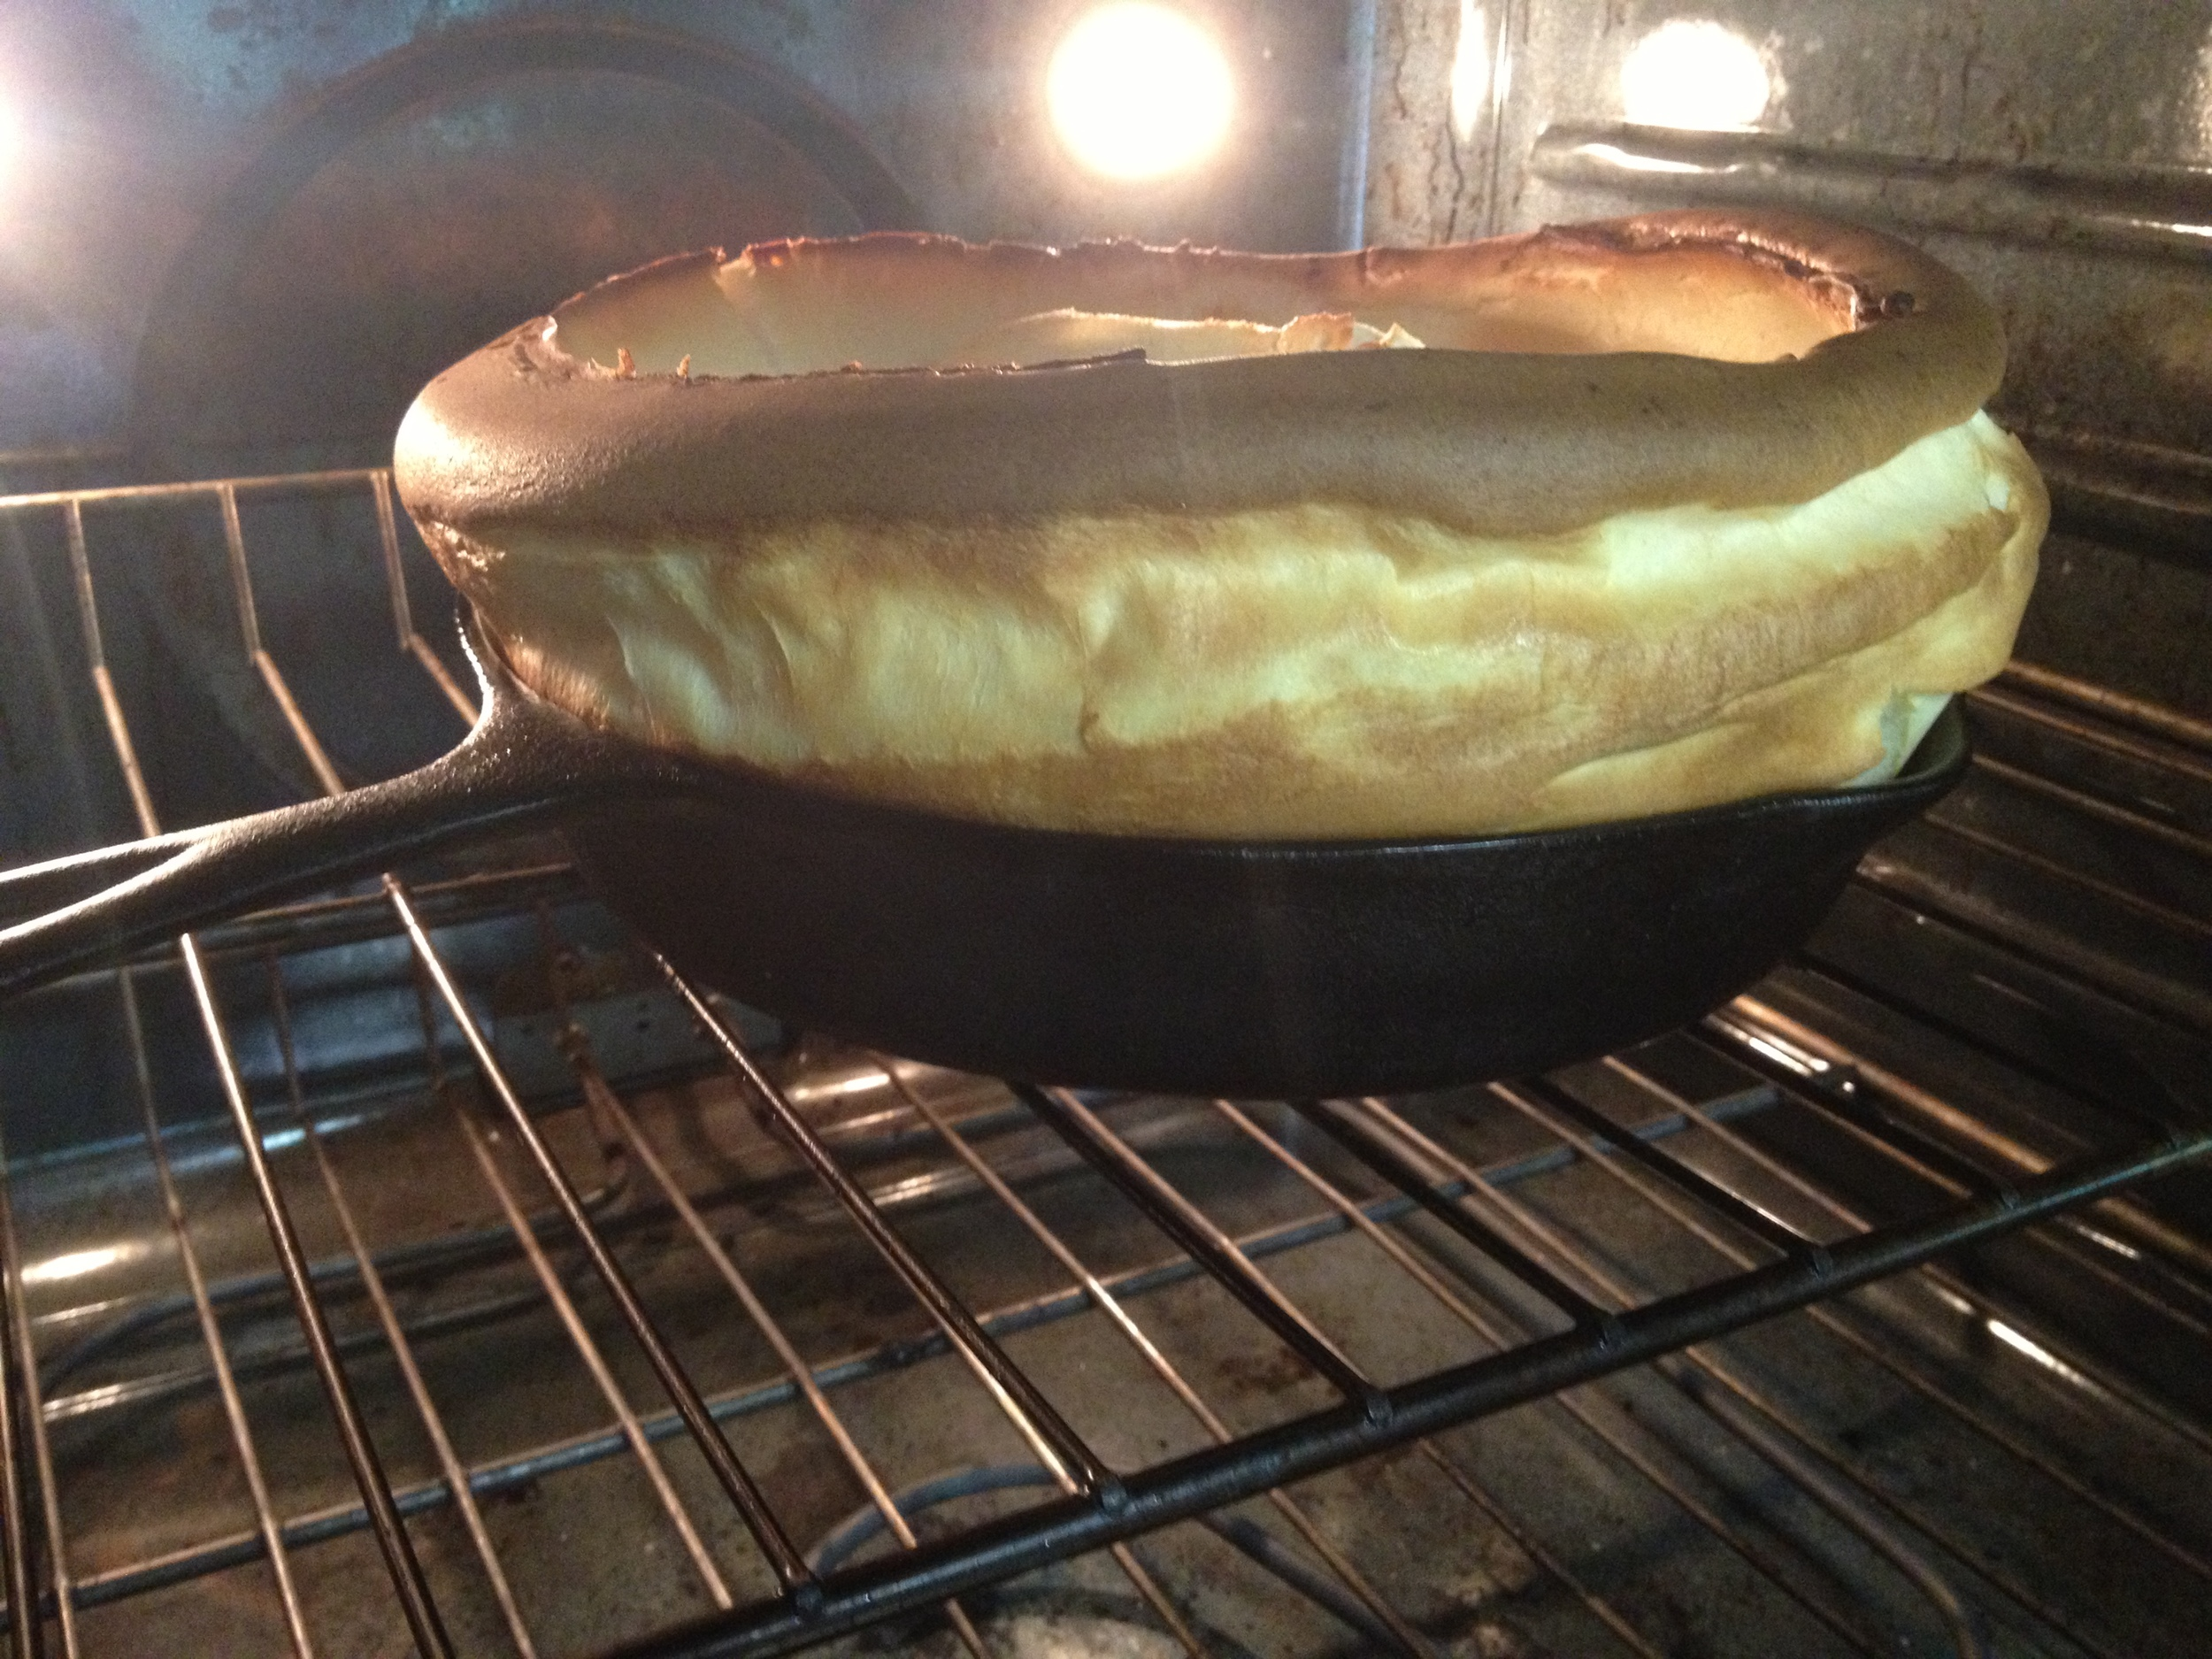 So I learned after a few attempts to lower the rack before you start baking so the edges do not burn.